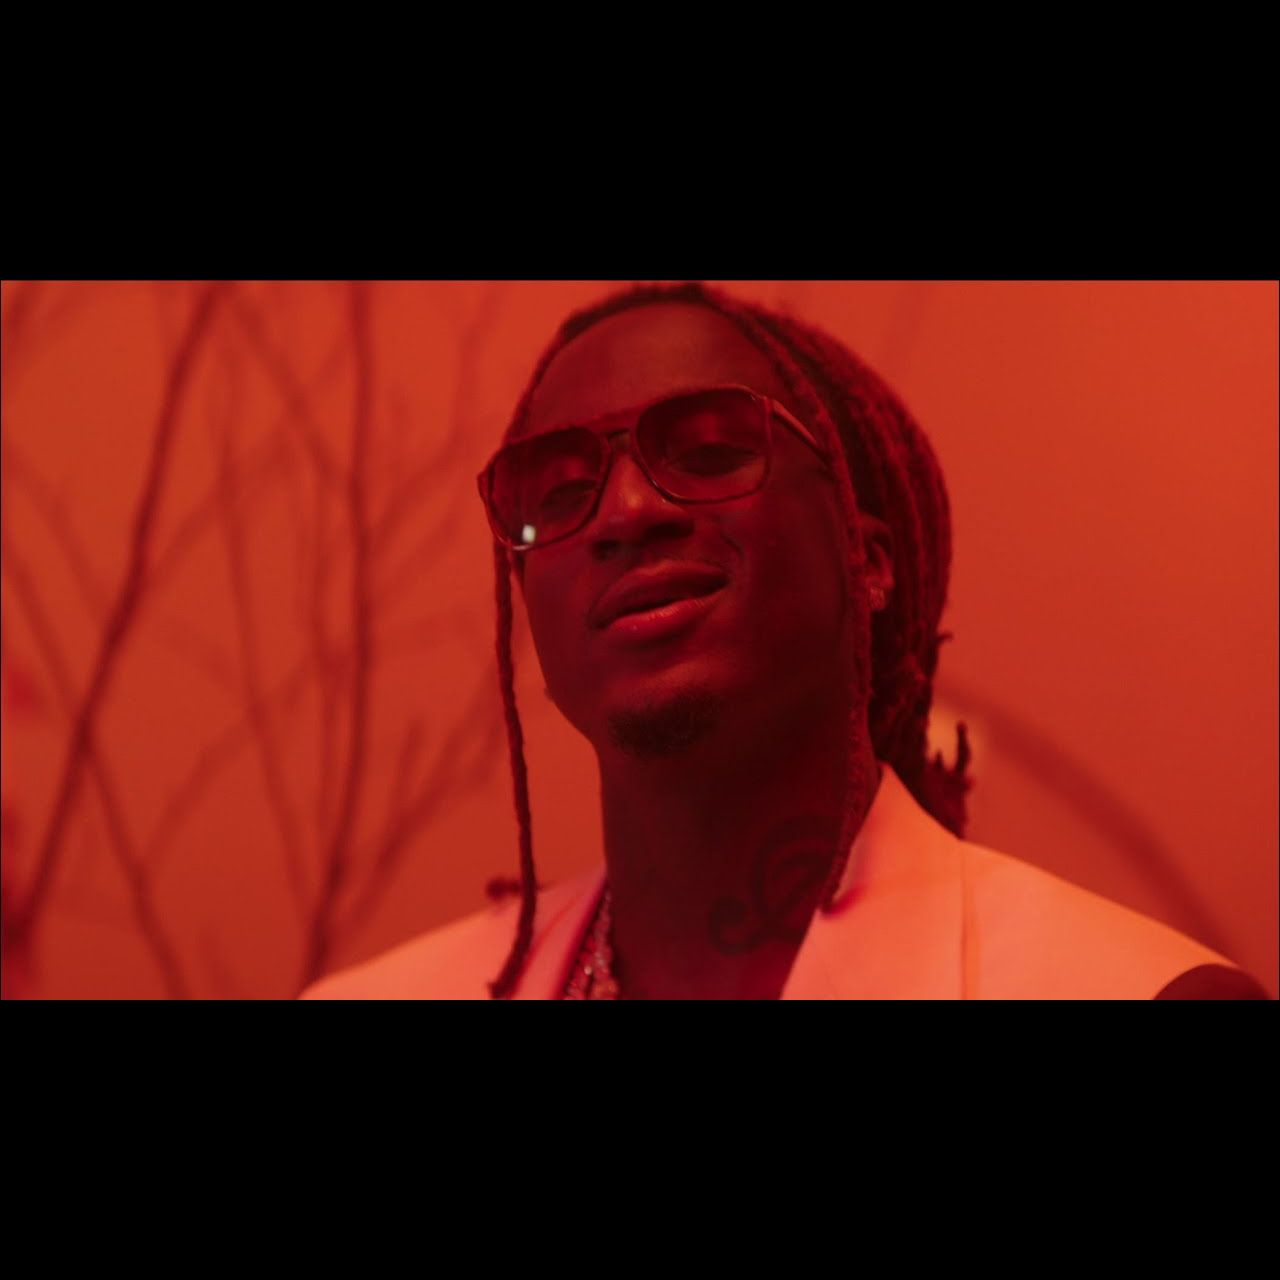 K Camp - What's On Your Mind (ft. Jacquees) (Thumbnail)